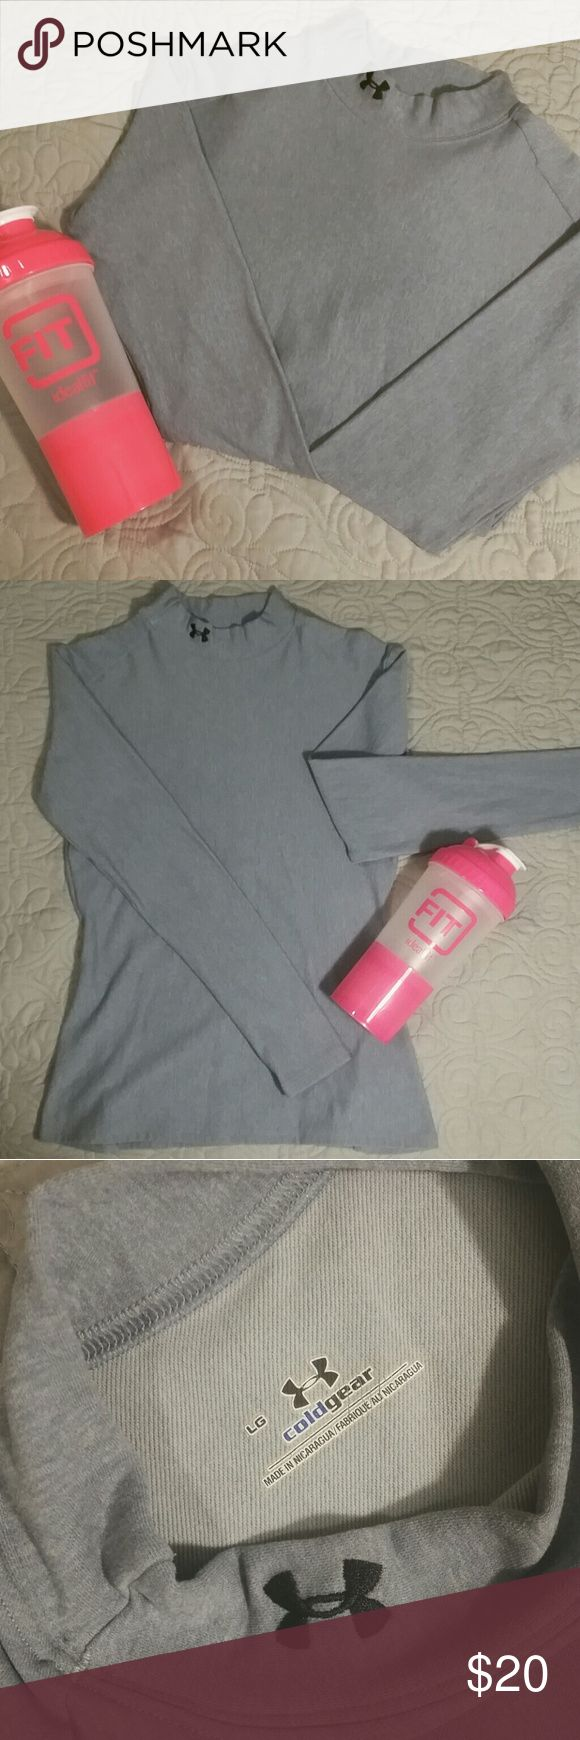 Under Armour fitted shirt Light grey long sleeve shirt. Cold gear by Under Armour. Always worn under snowboarding gear so there's no stains or flaws. Size large, but I typically wear a small and it's still a fitted wear on me. Feel free to make an offer! Under Armour Tops Tees - Long Sleeve